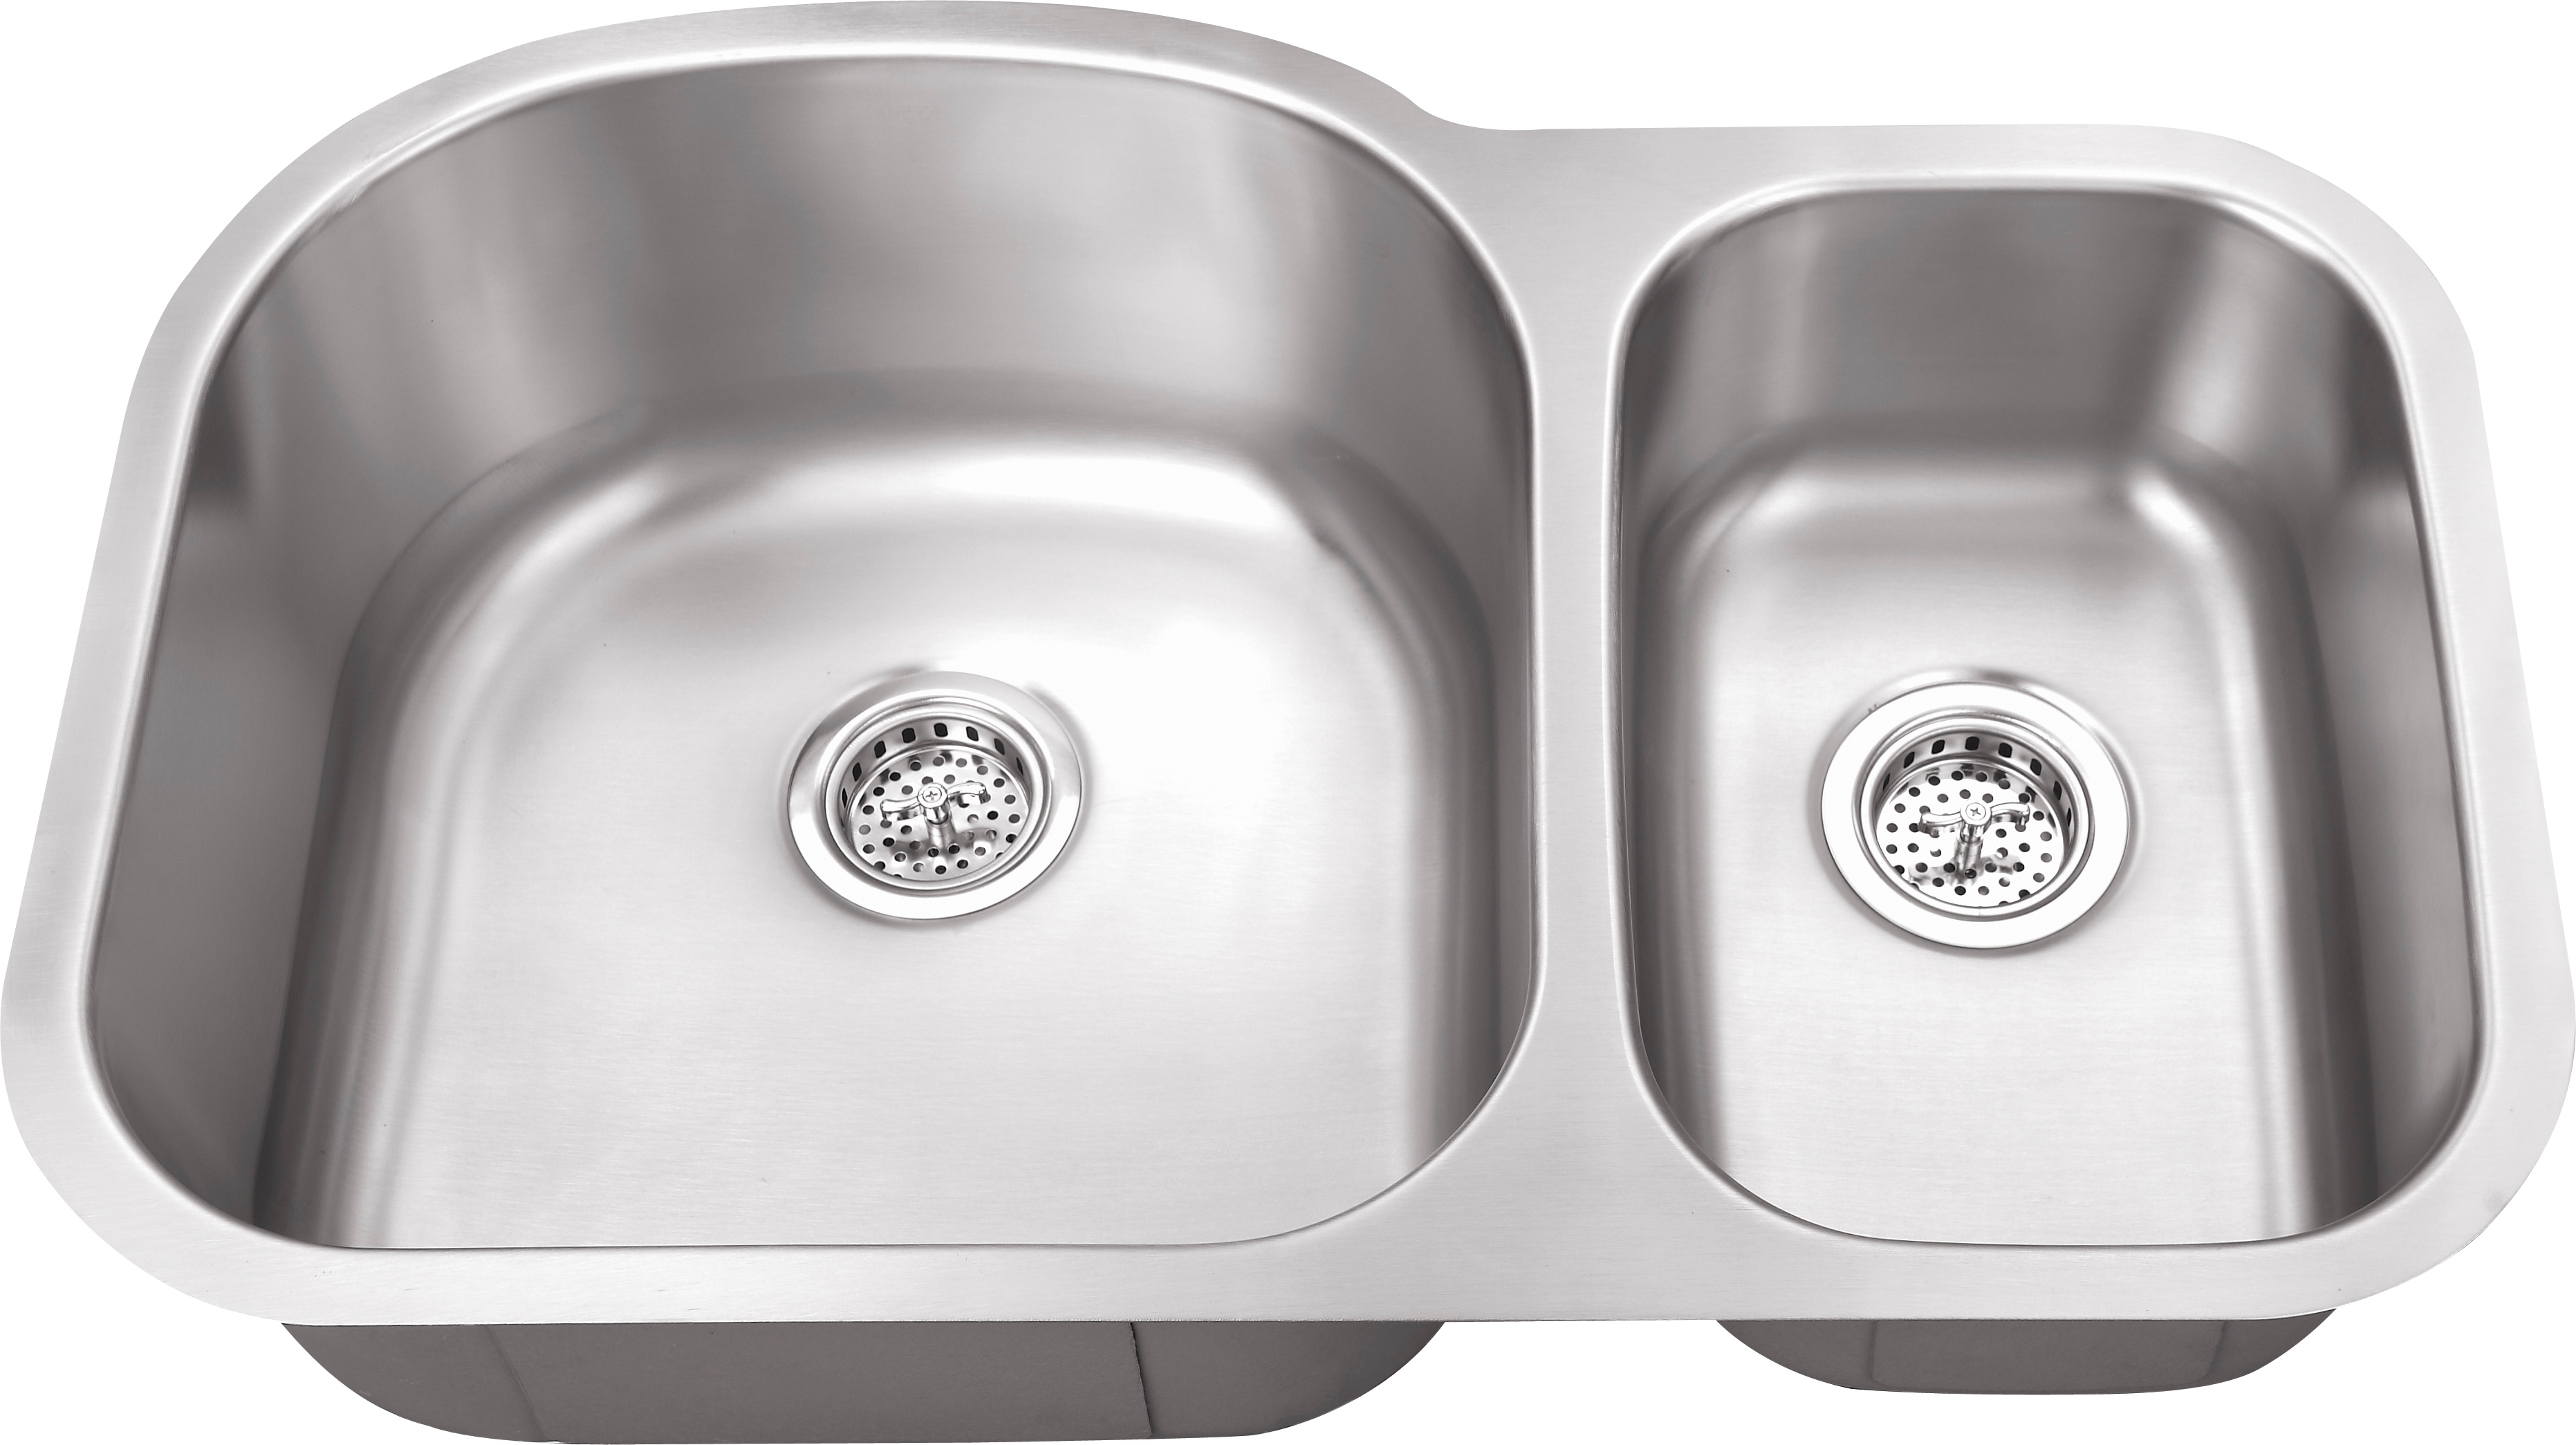 sinks basins faucets pittsburgh kitchenramma llc